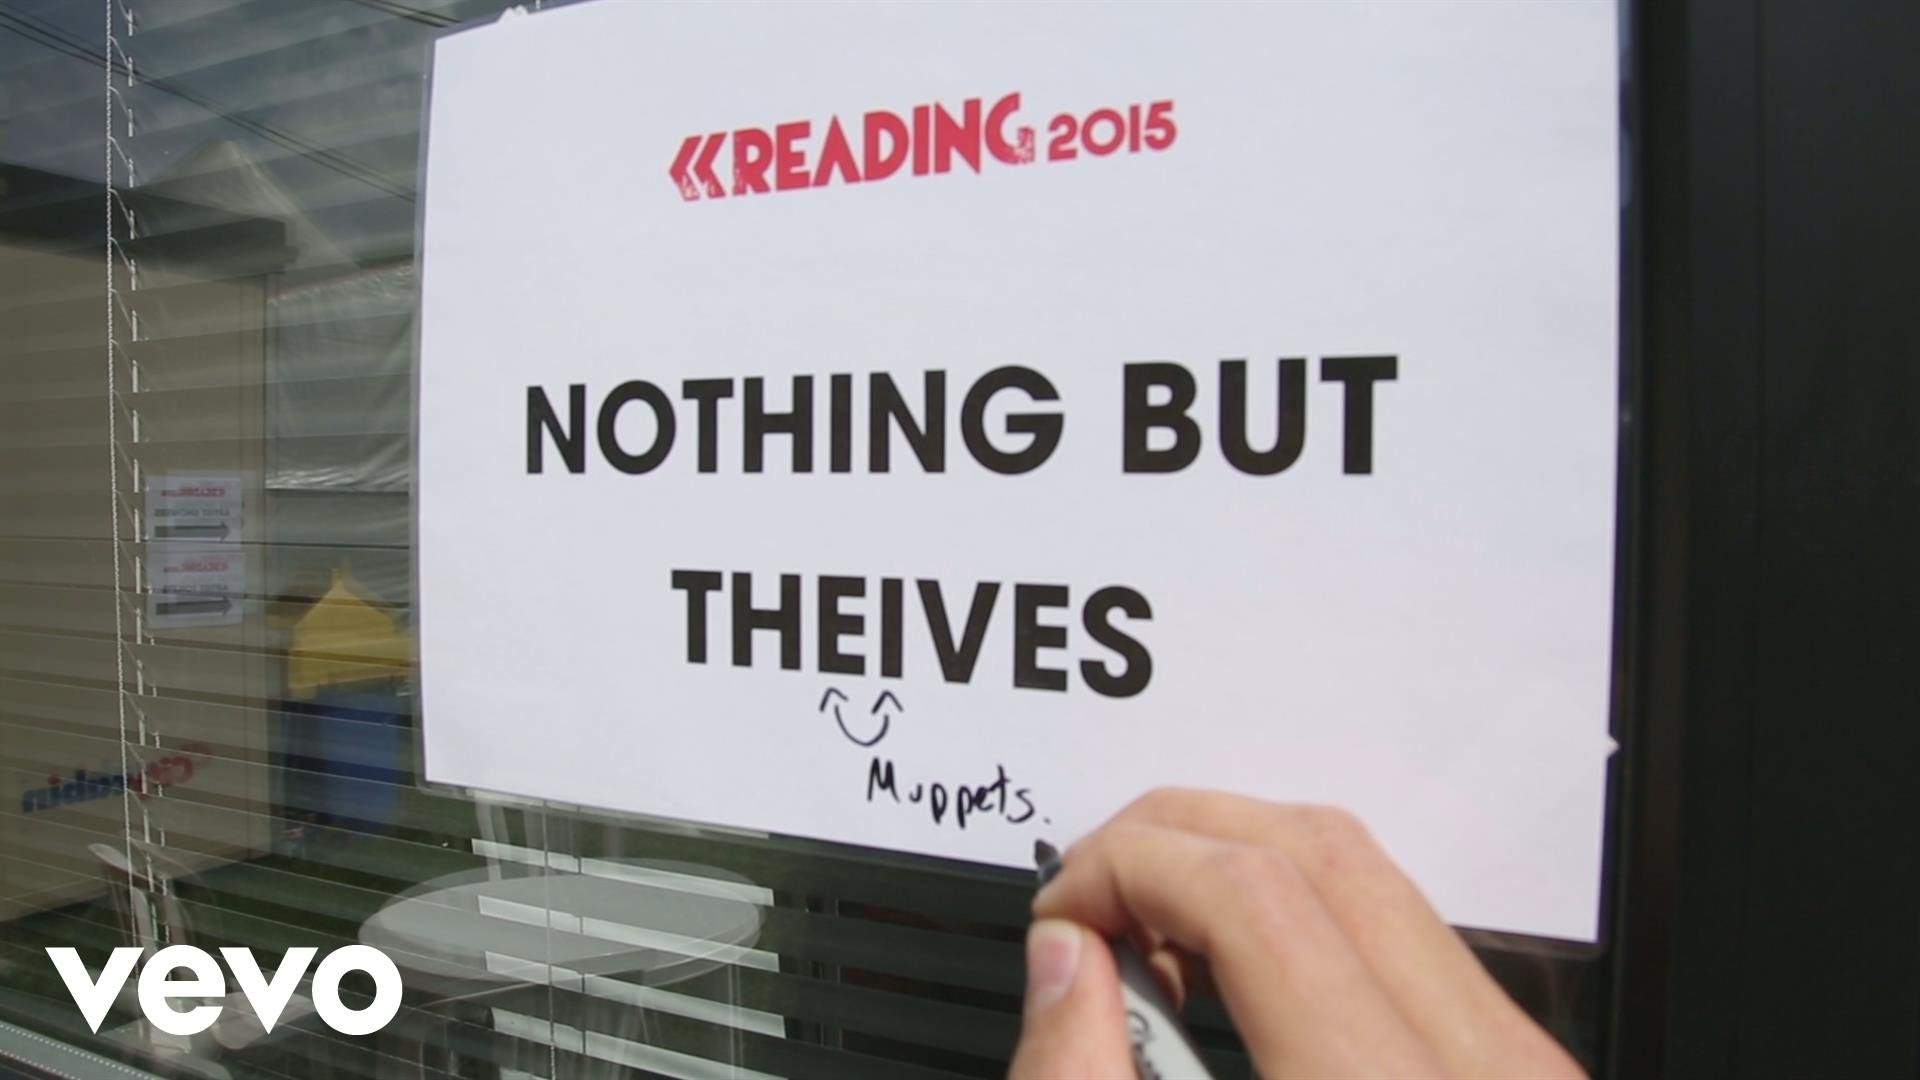 Nothing But Thieves release their debut album this Friday Nothing But Thieves pe…